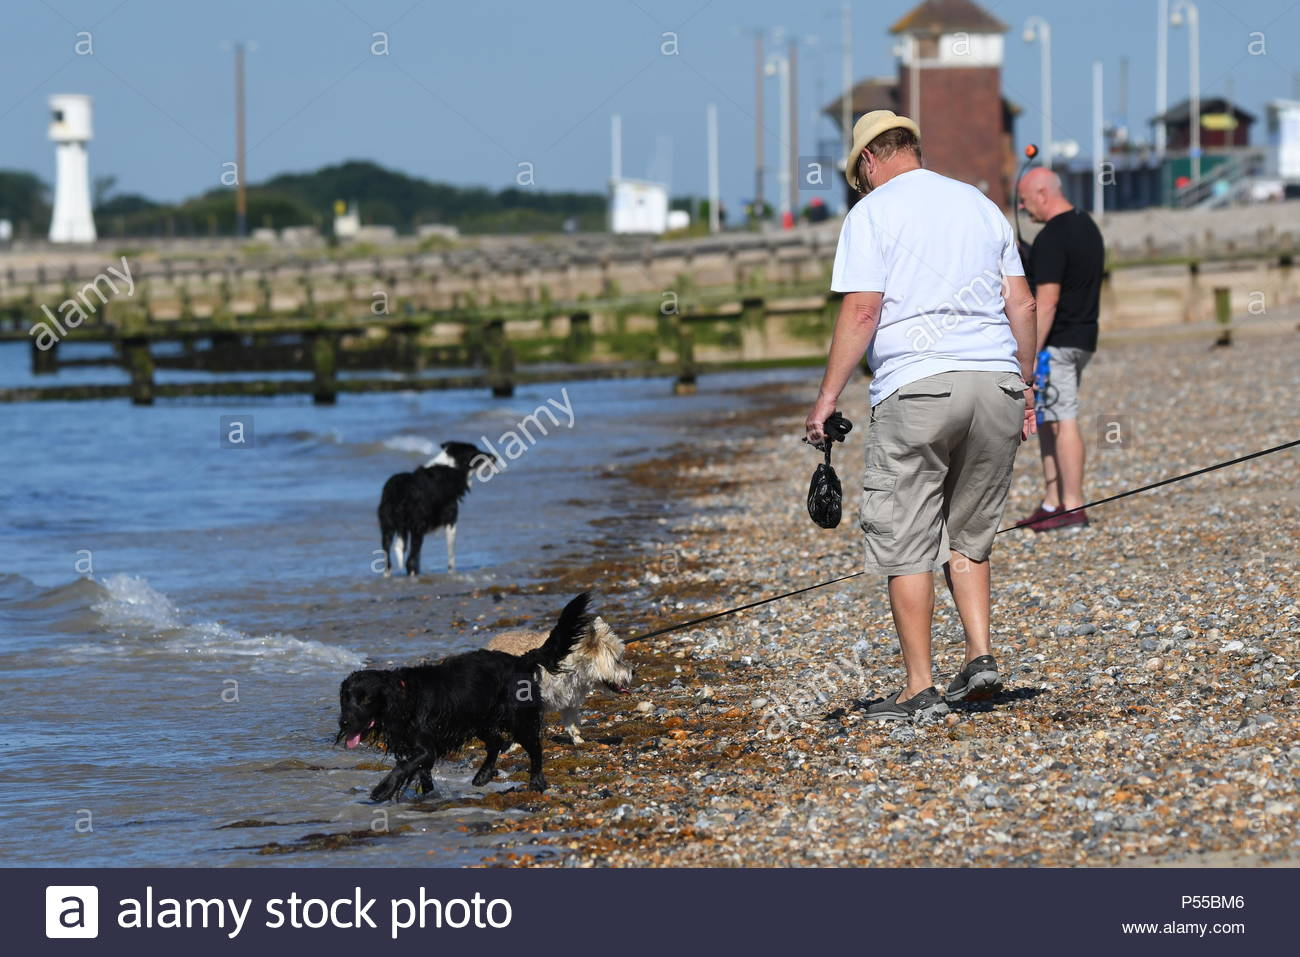 Littlehampton, UK. Monday 25th June 2018. People walk dogs by the sea on a very warm and sunny morning in Littlehampton, on the South Coast. Credit: Geoff Smith / Alamy Live News. Stock Photo